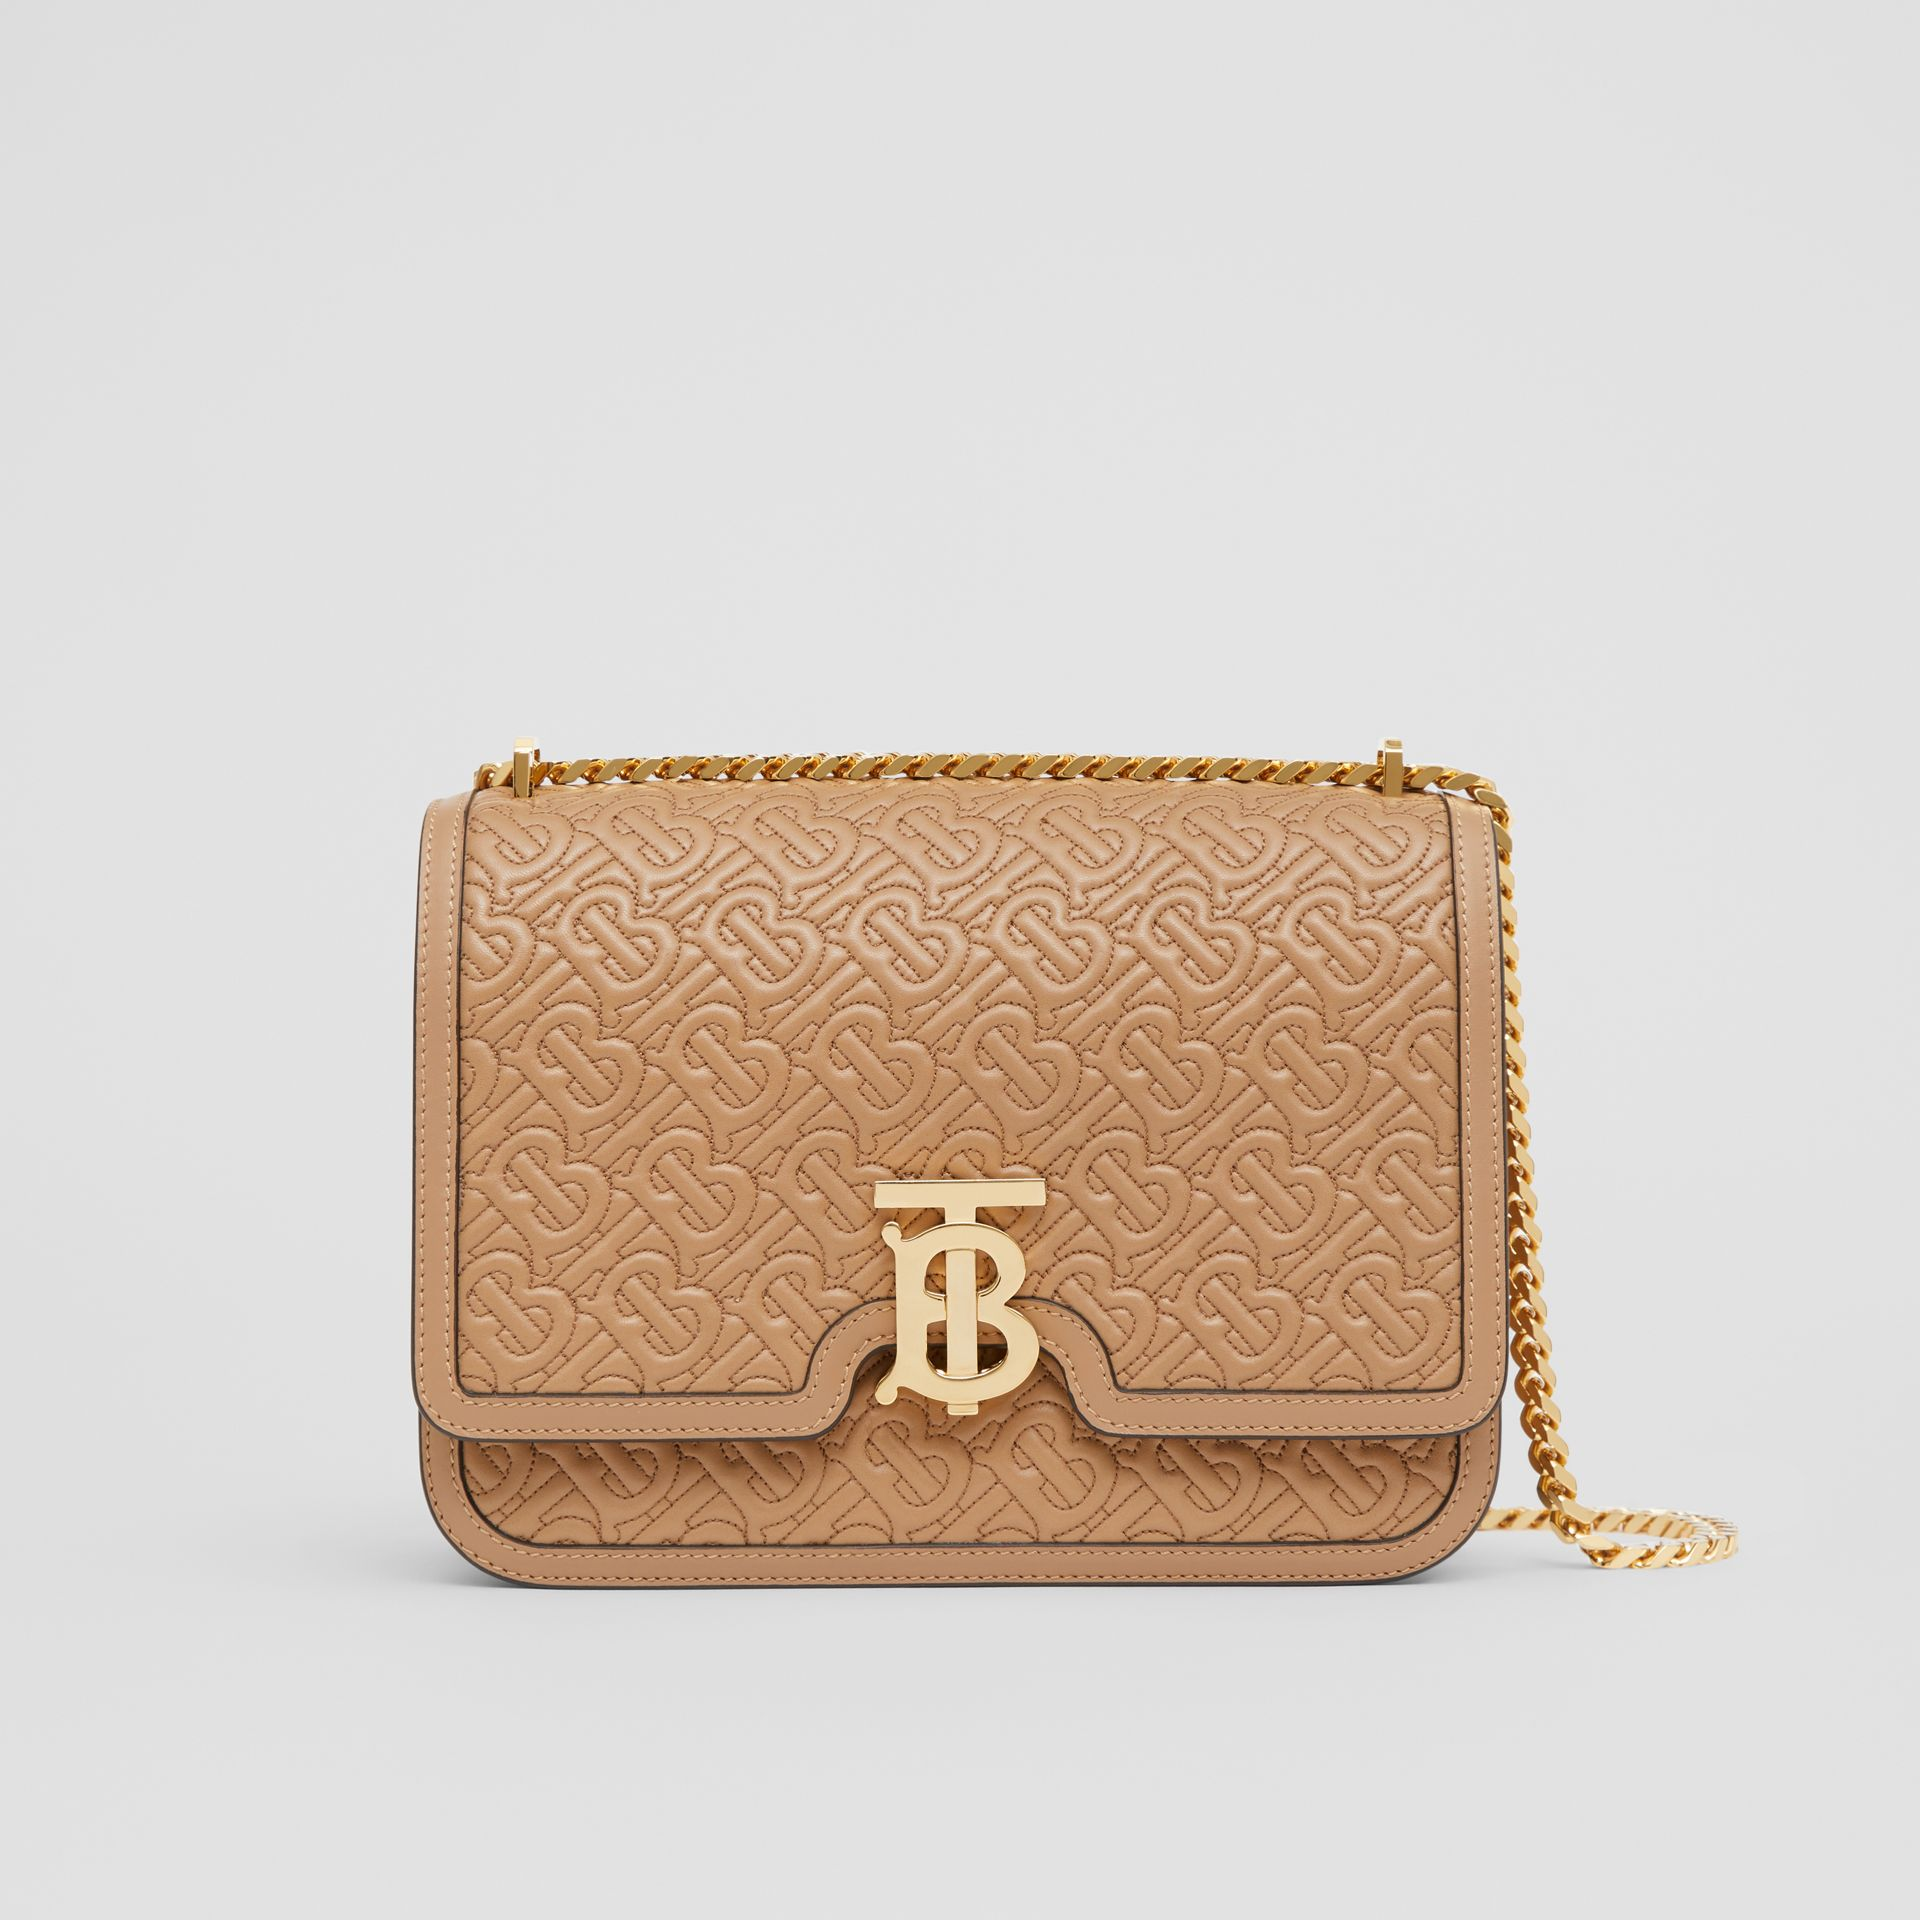 Medium Quilted Monogram Lambskin TB Bag in Honey - Women | Burberry United Kingdom - gallery image 0